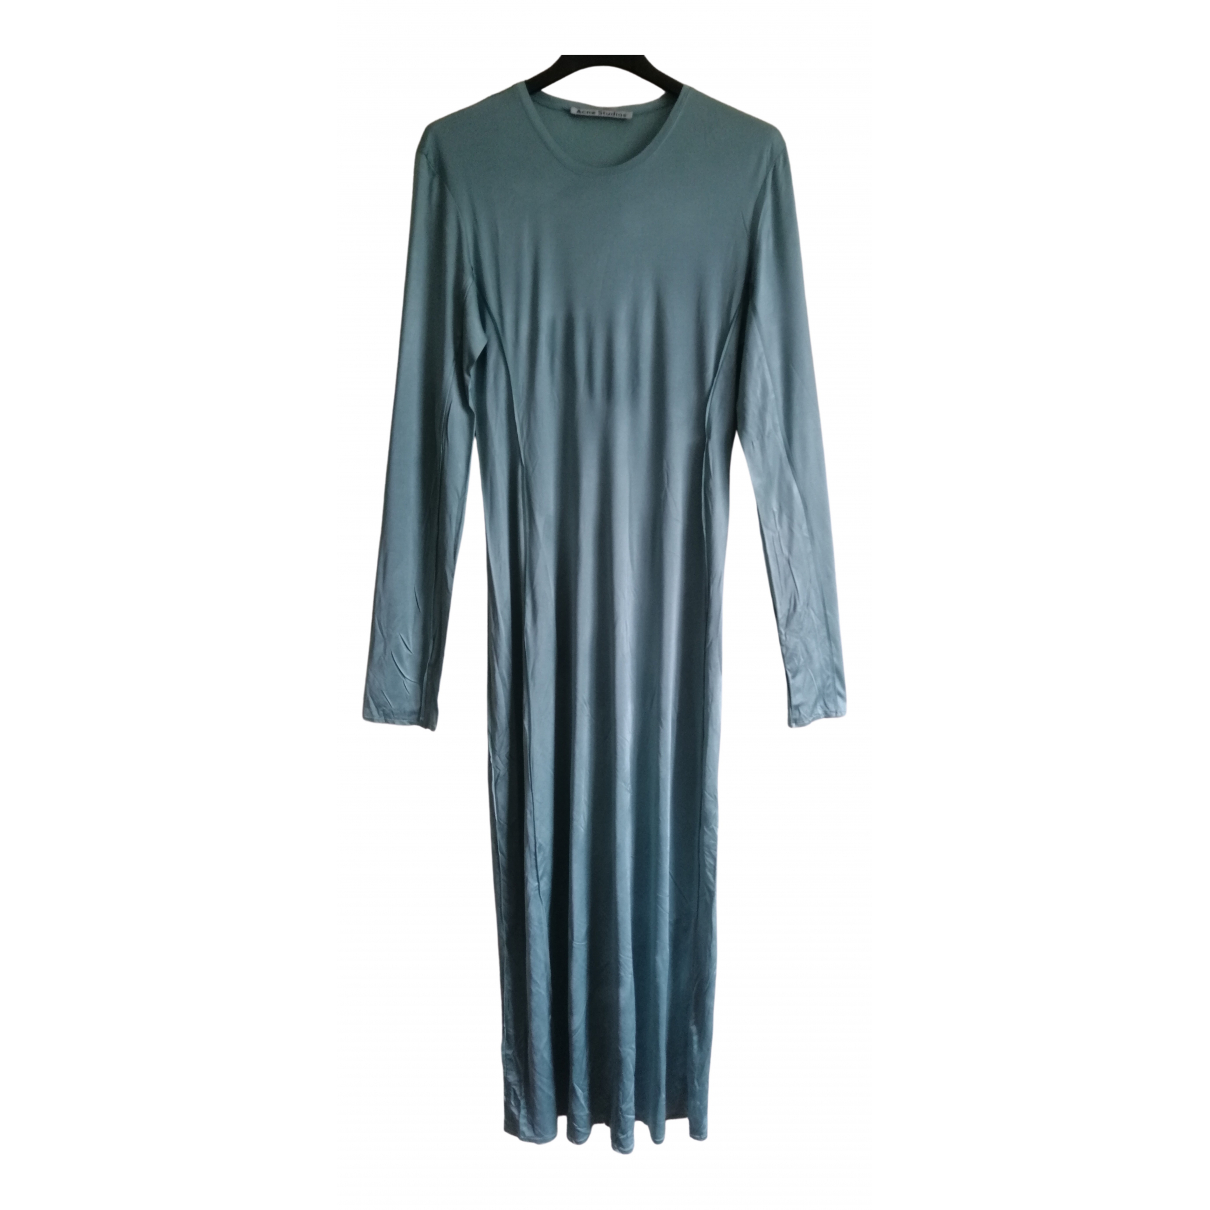 Acne Studios \N Green dress for Women XS International